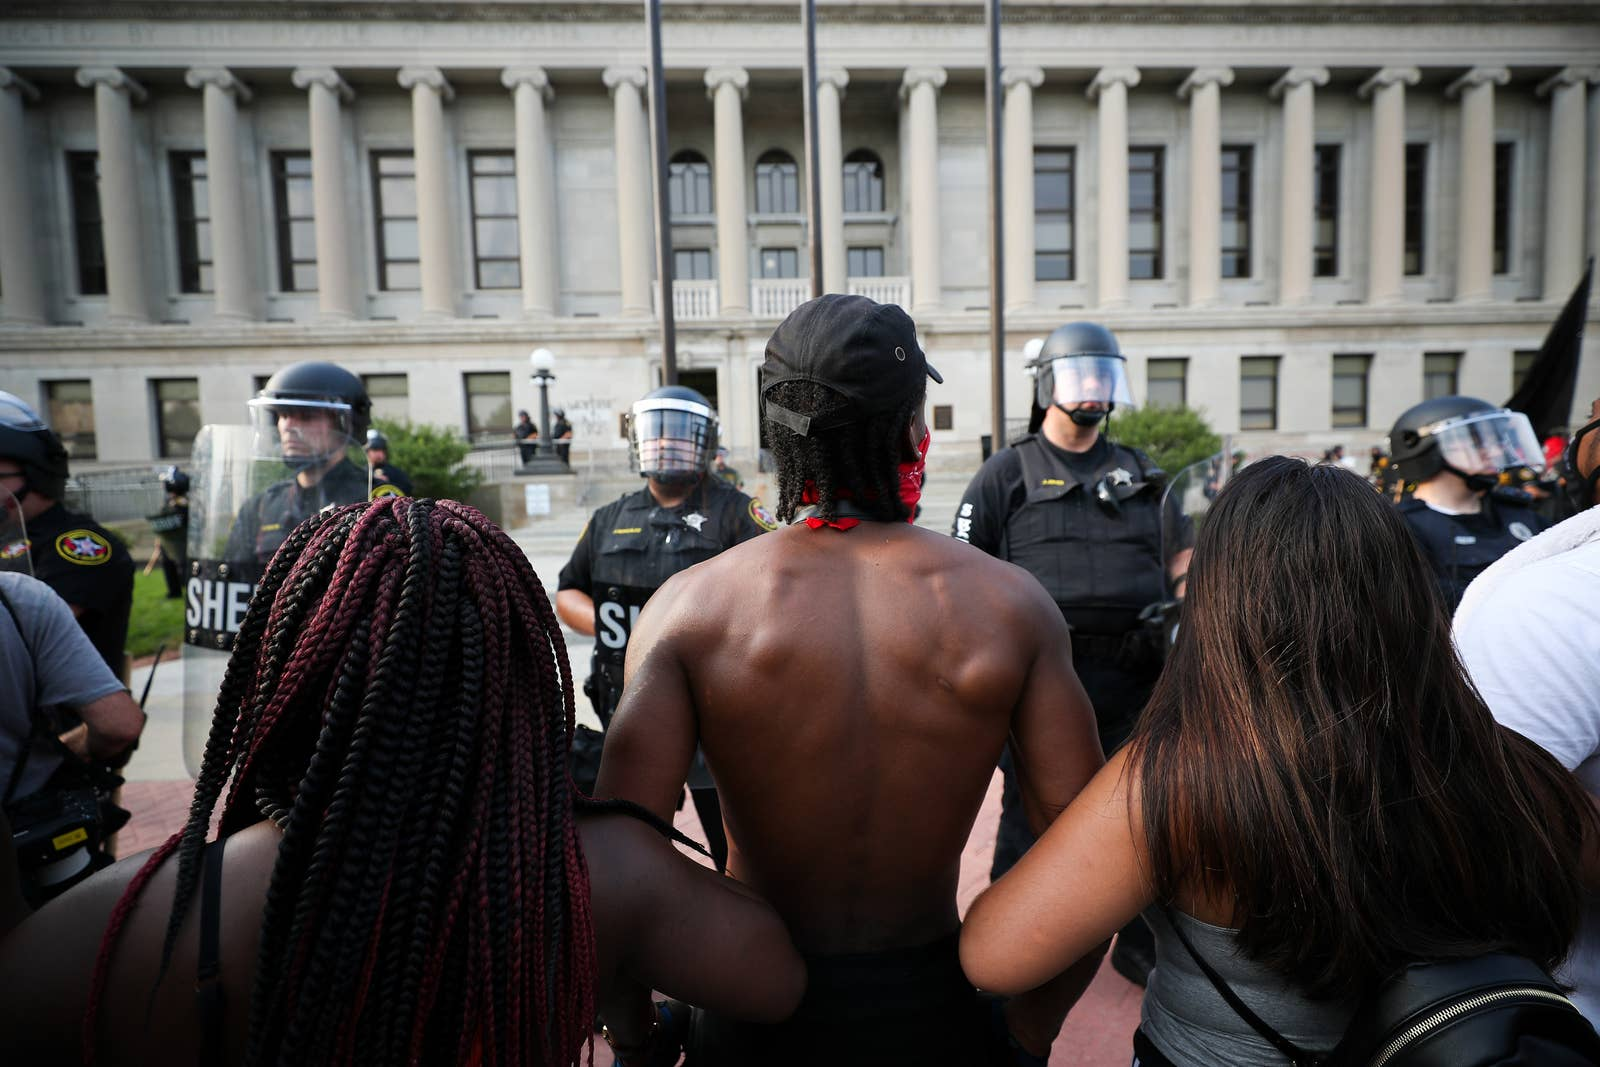 A black man from behind with his arms linked to other protesters faces off with police in riot gear in front of the courthouse